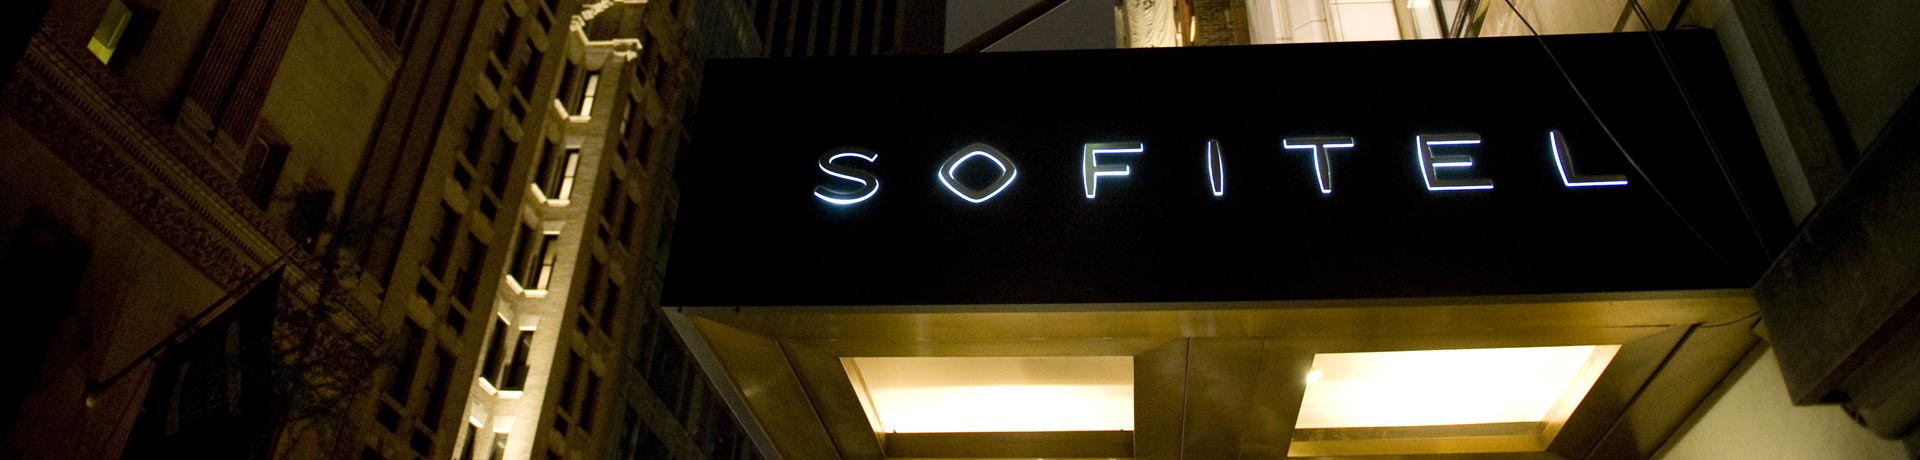 Affaire du Sofitel de New York